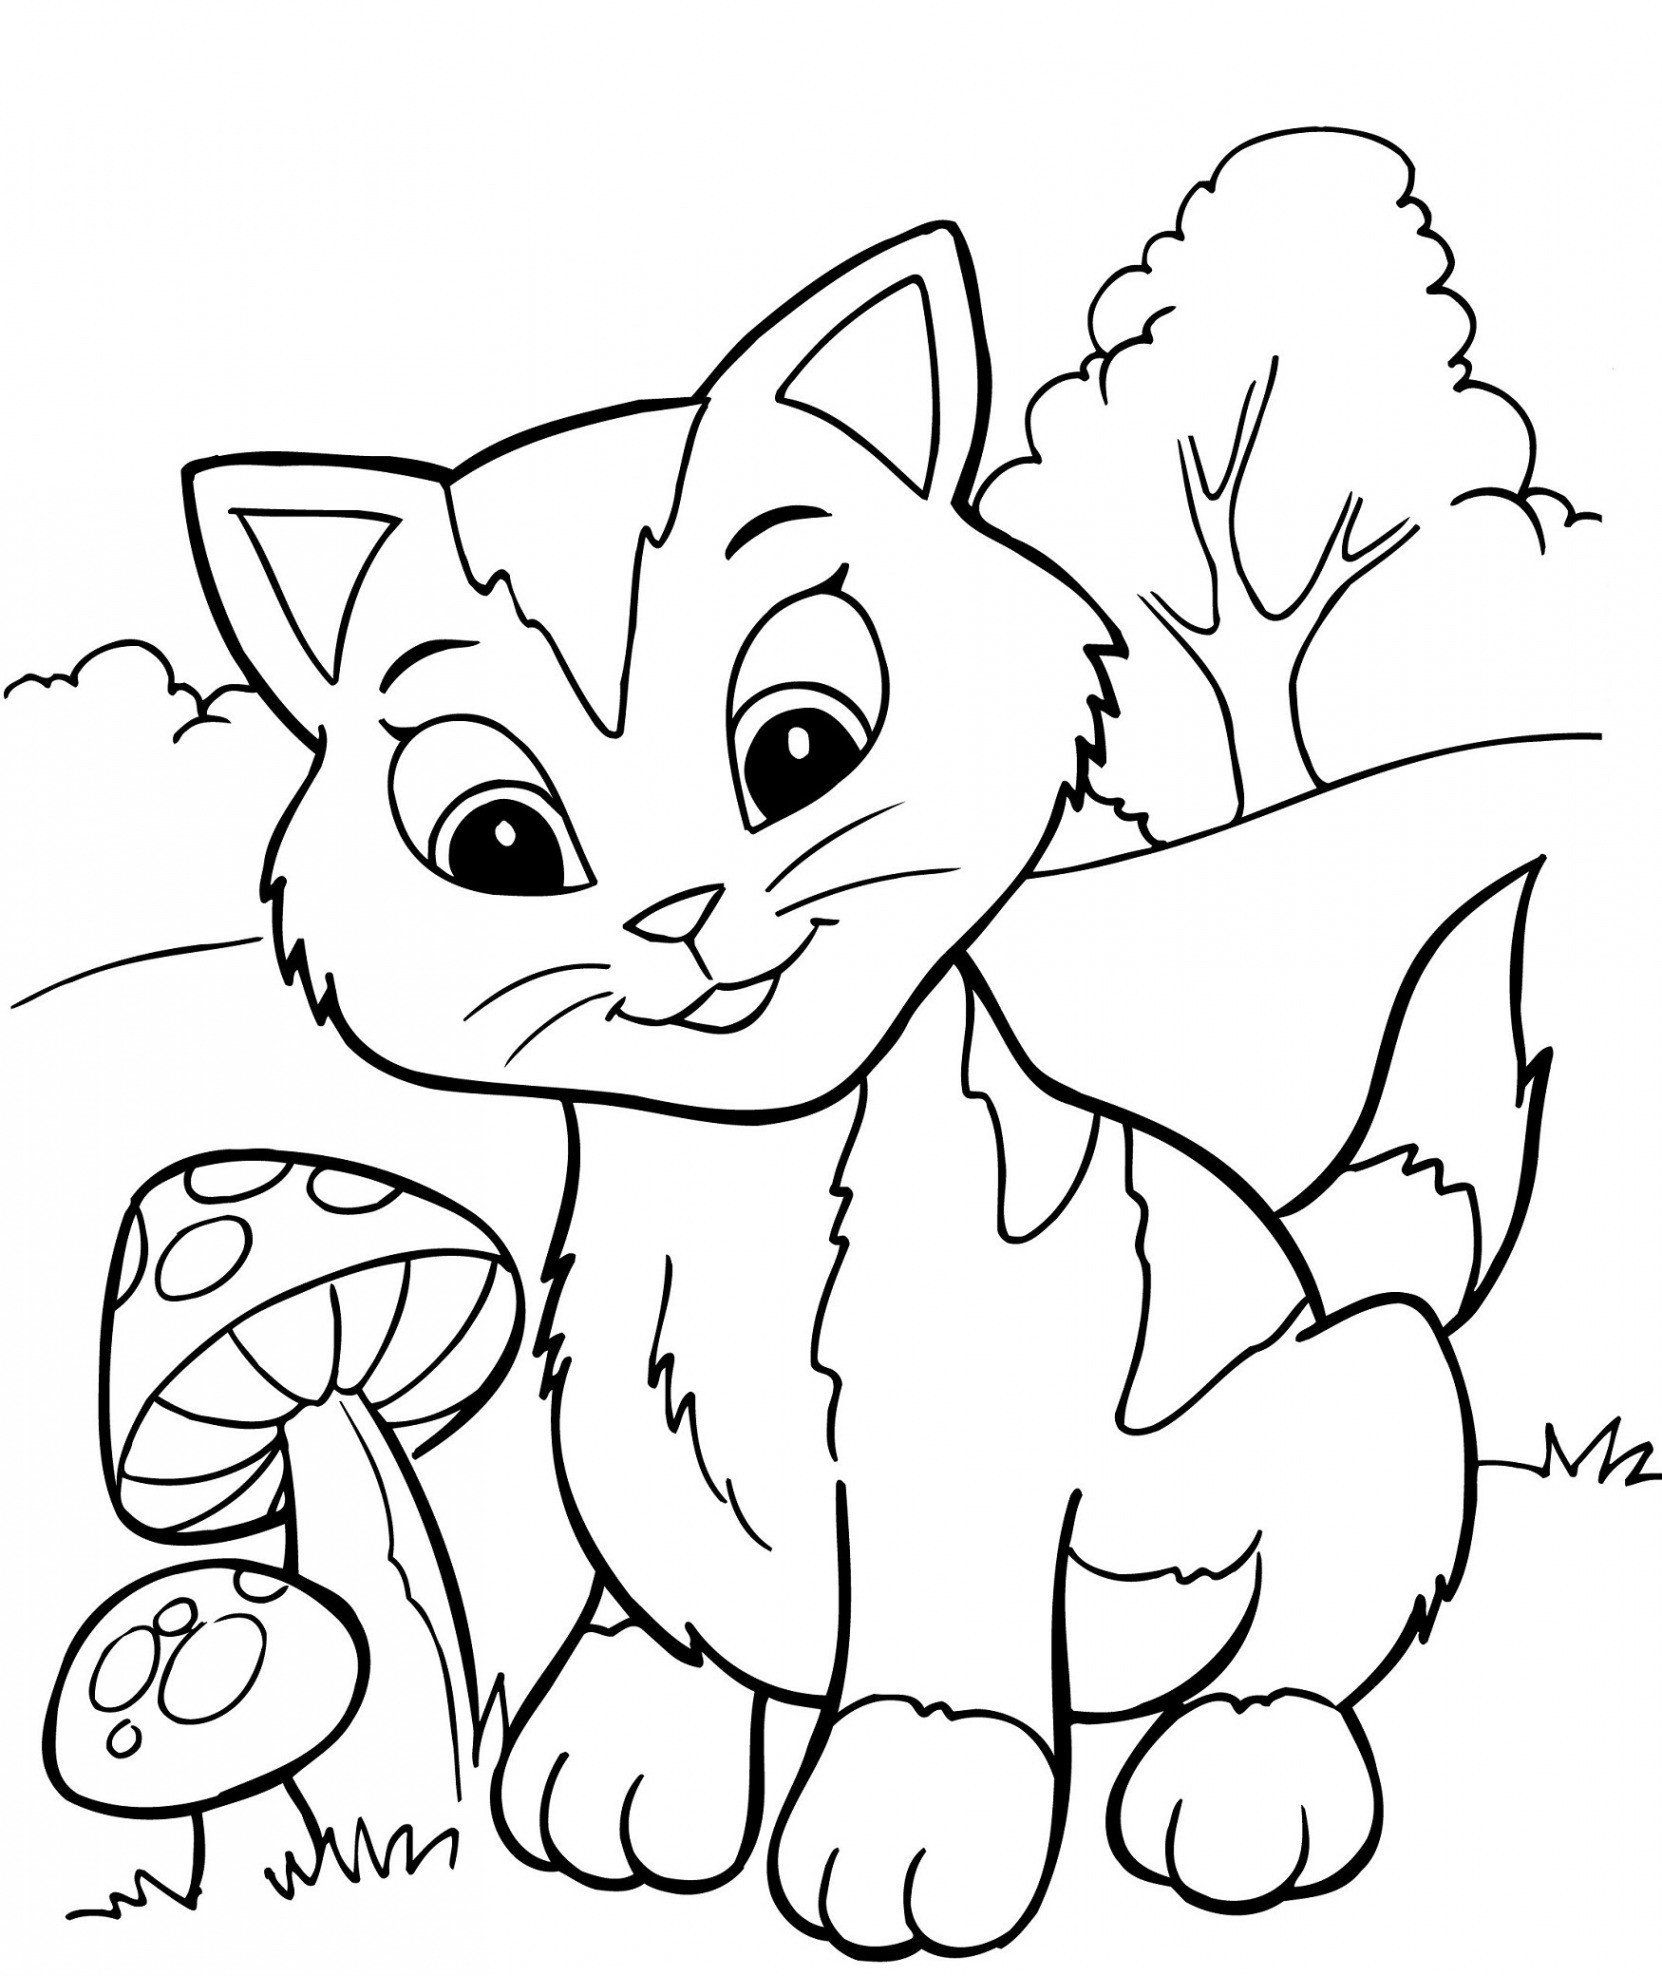 Cute Kitten Coloring Pages Best Of 26 Kittens Coloring Pages Download Coloring Sheets Animal Coloring Pages Cat Coloring Page Kitten Coloring Book